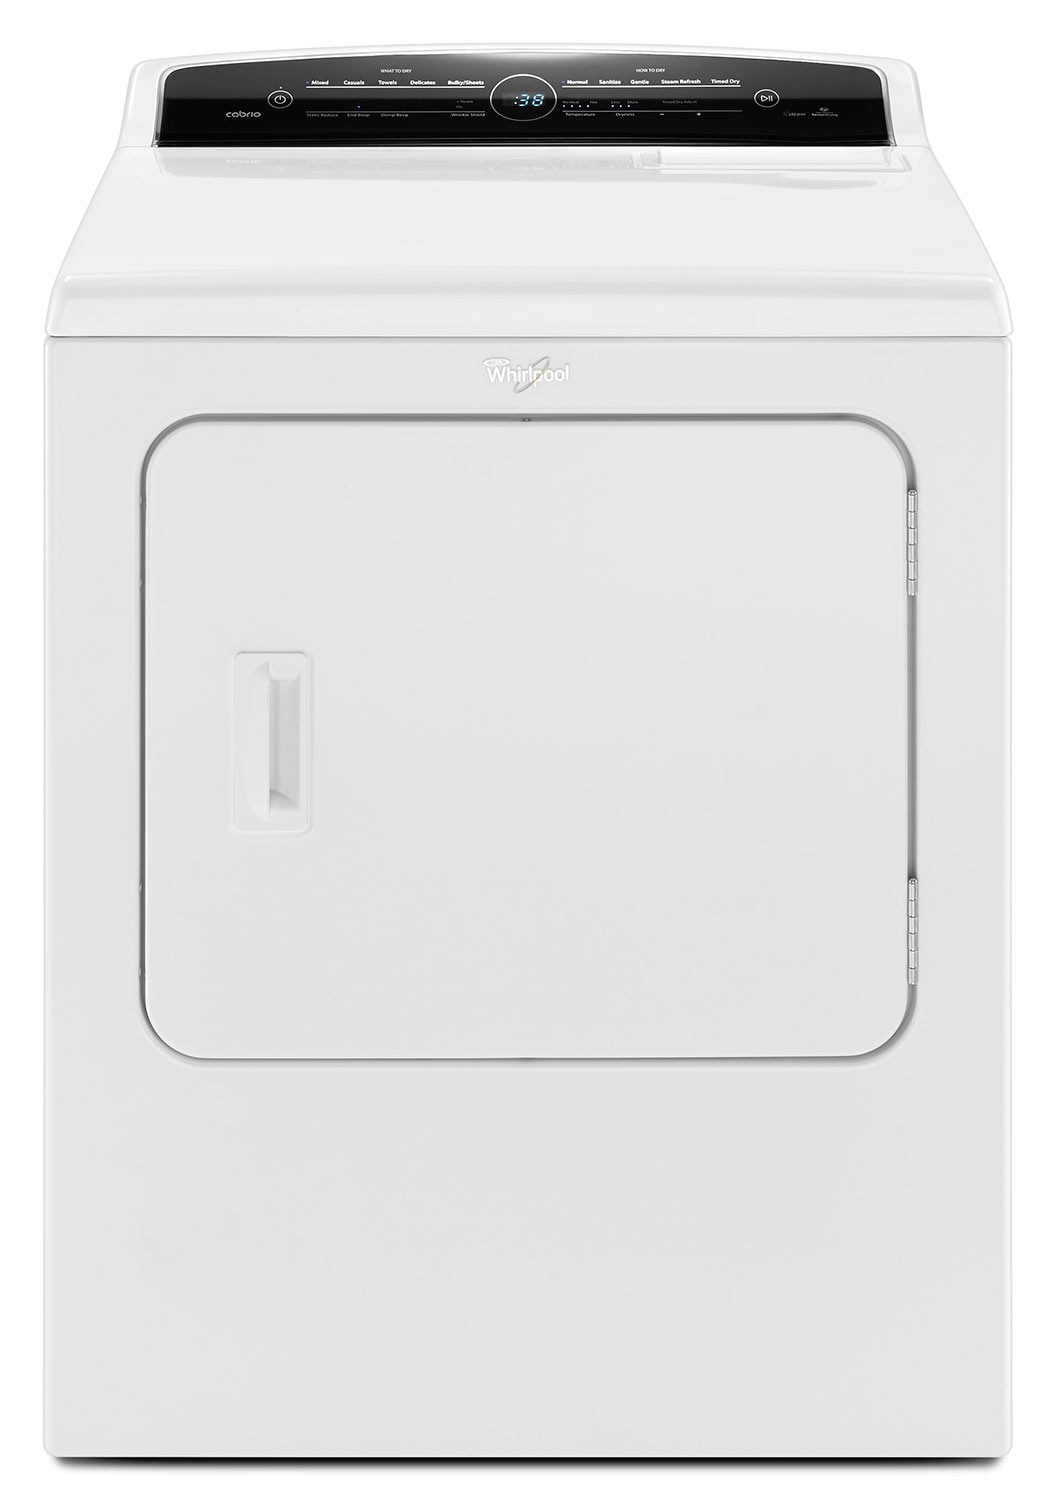 Whirlpool® Cabrio® 7.0 Cu. Ft. Electric Dryer - White